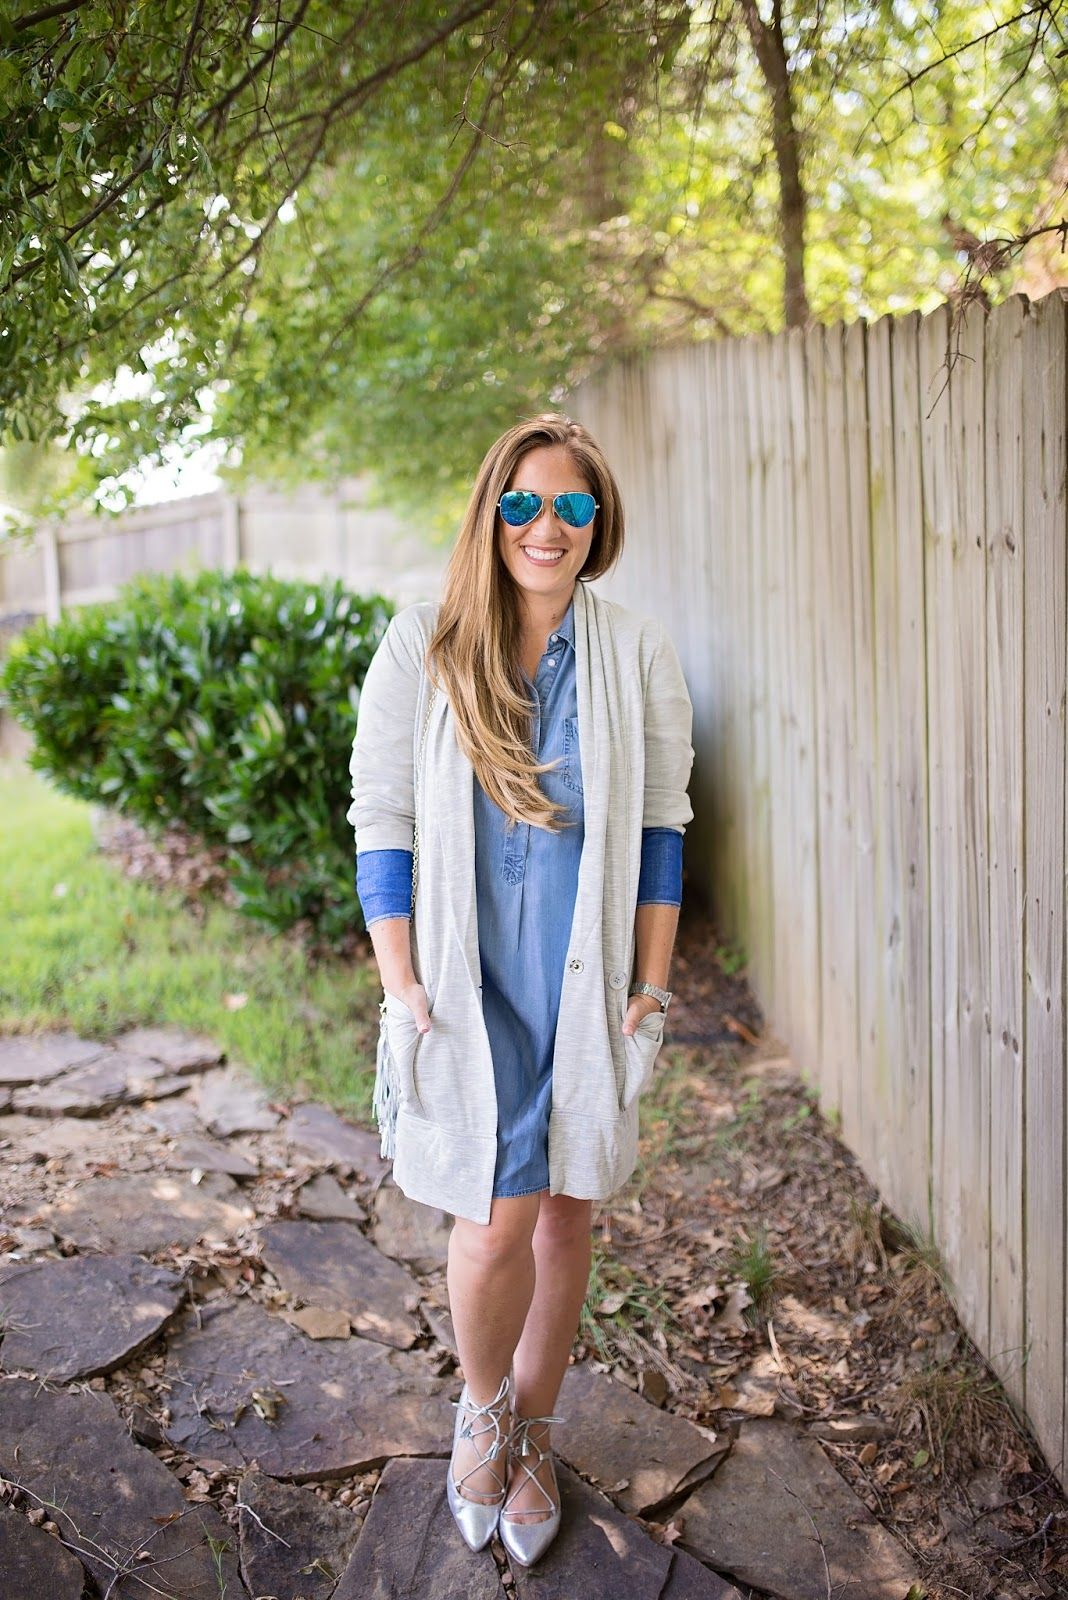 20 Target Gift Card Giveaway Because I Said So Walking In Memphis In High Heels Summer Hoodies Fashion Blogger Summer Cardigan [ 1600 x 1068 Pixel ]